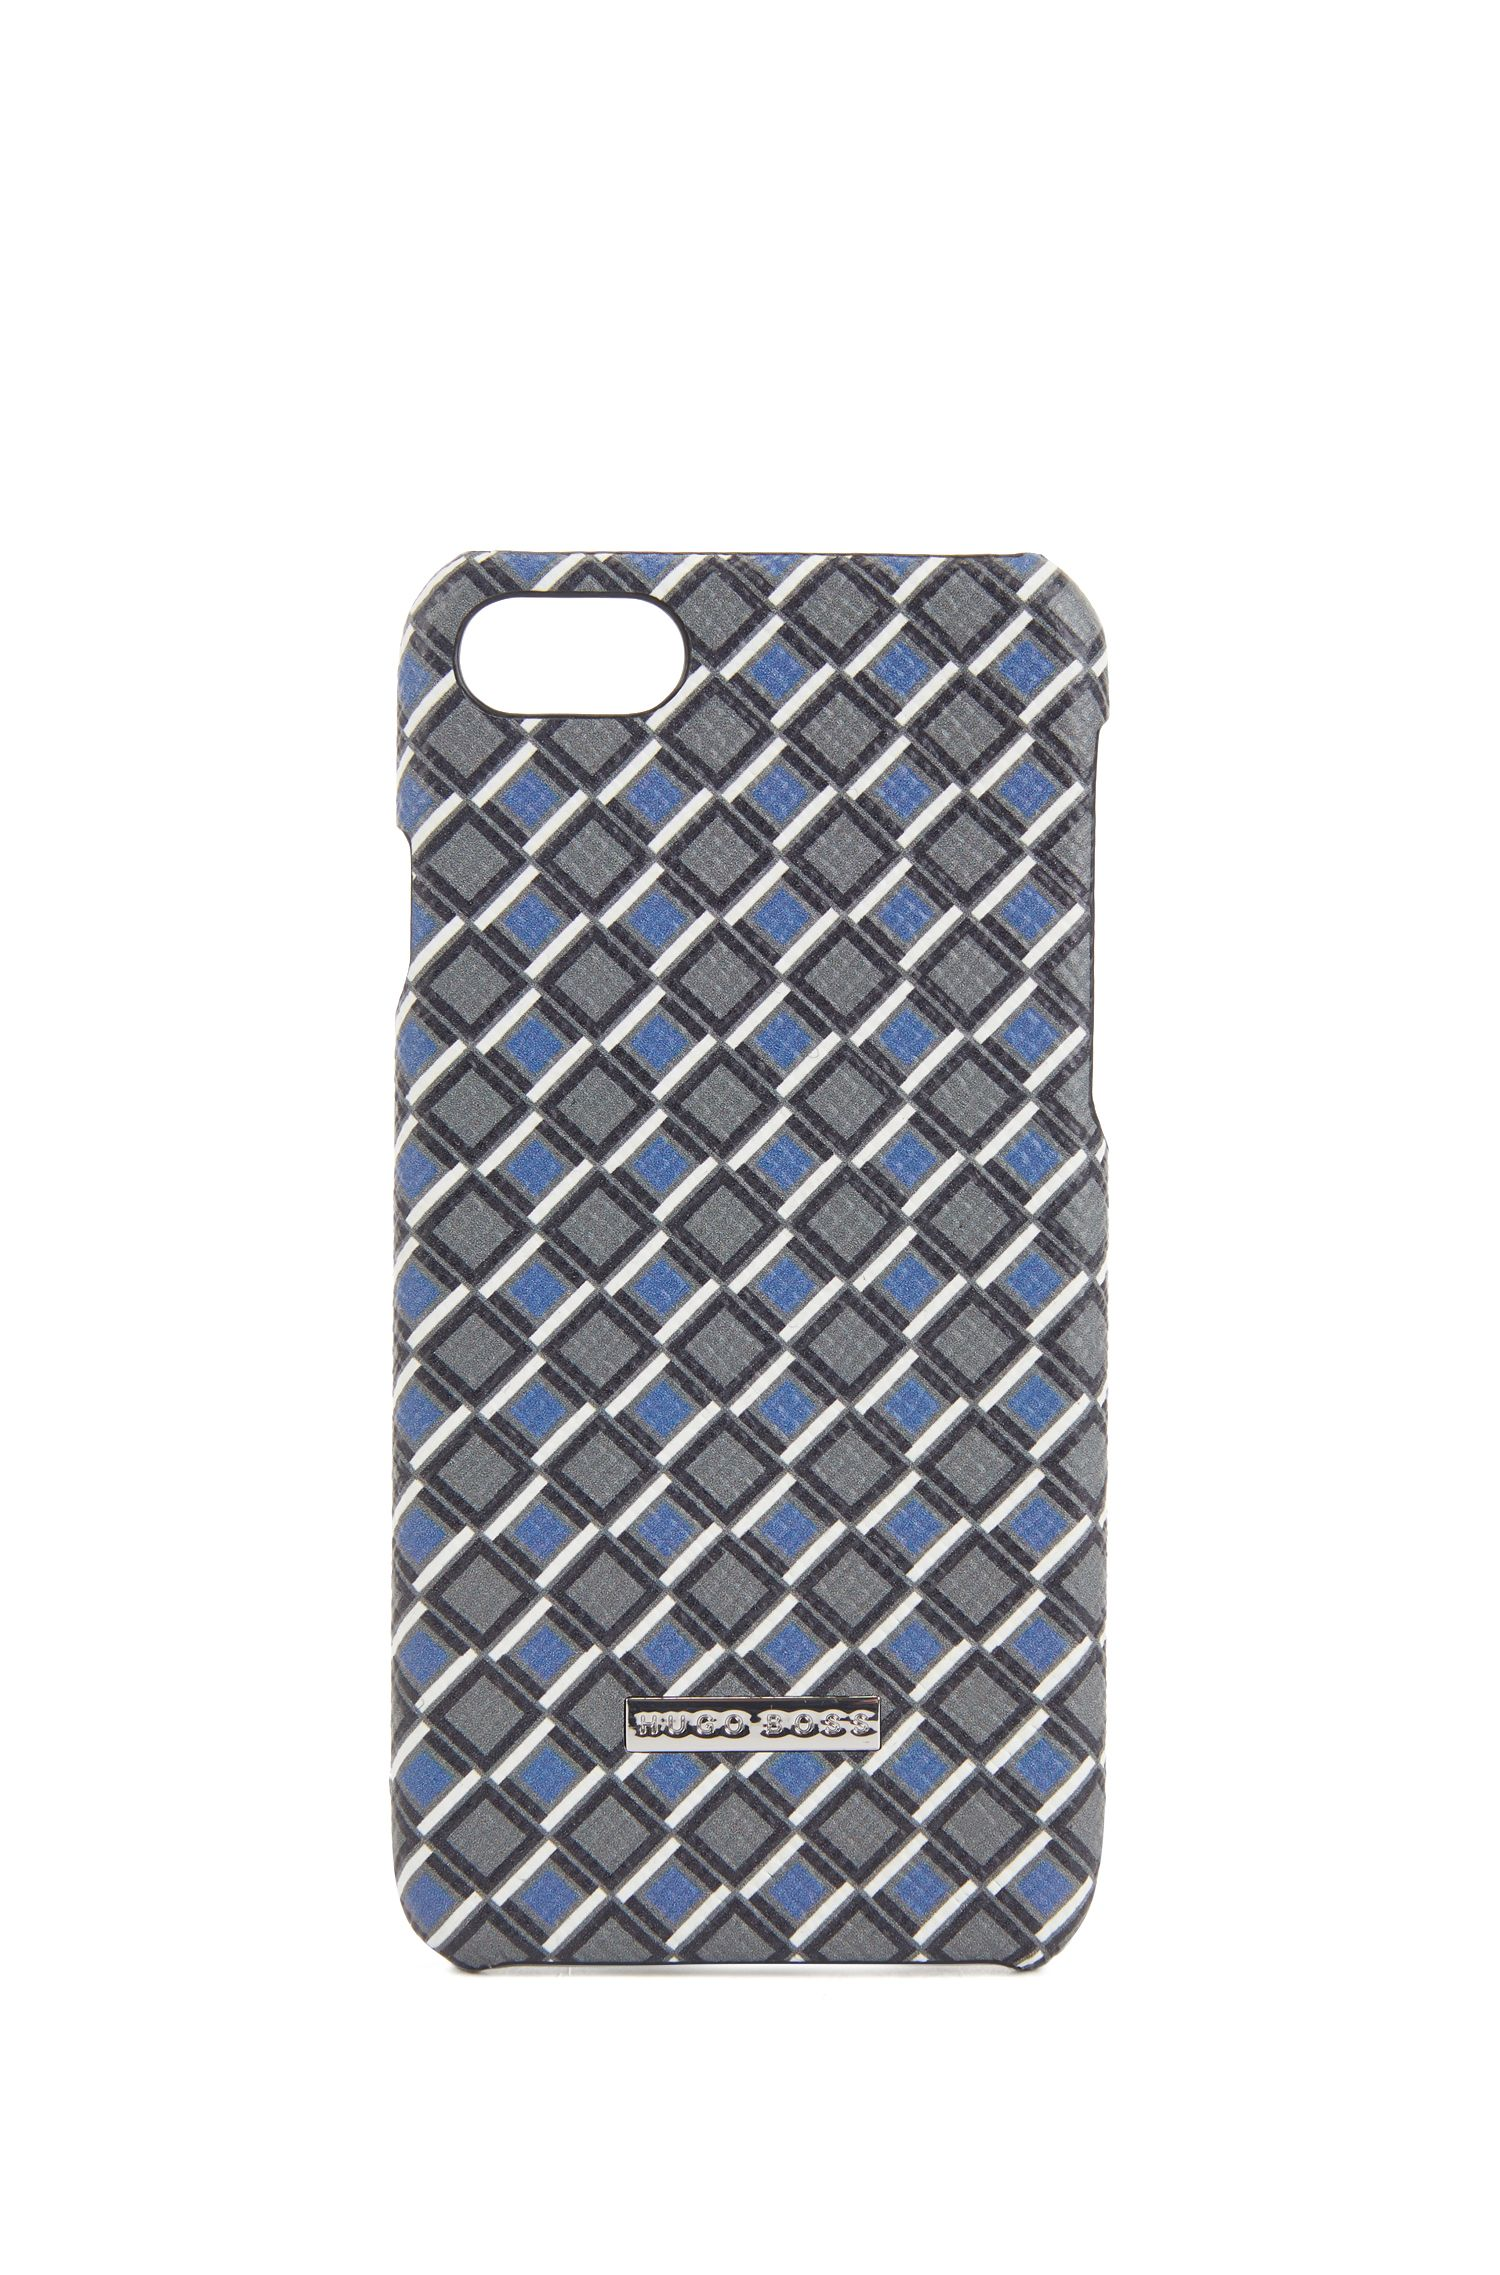 Hoesje voor de iPhone 8 van bedrukt palmellatoleer uit de Signature Collection, Bedrukt